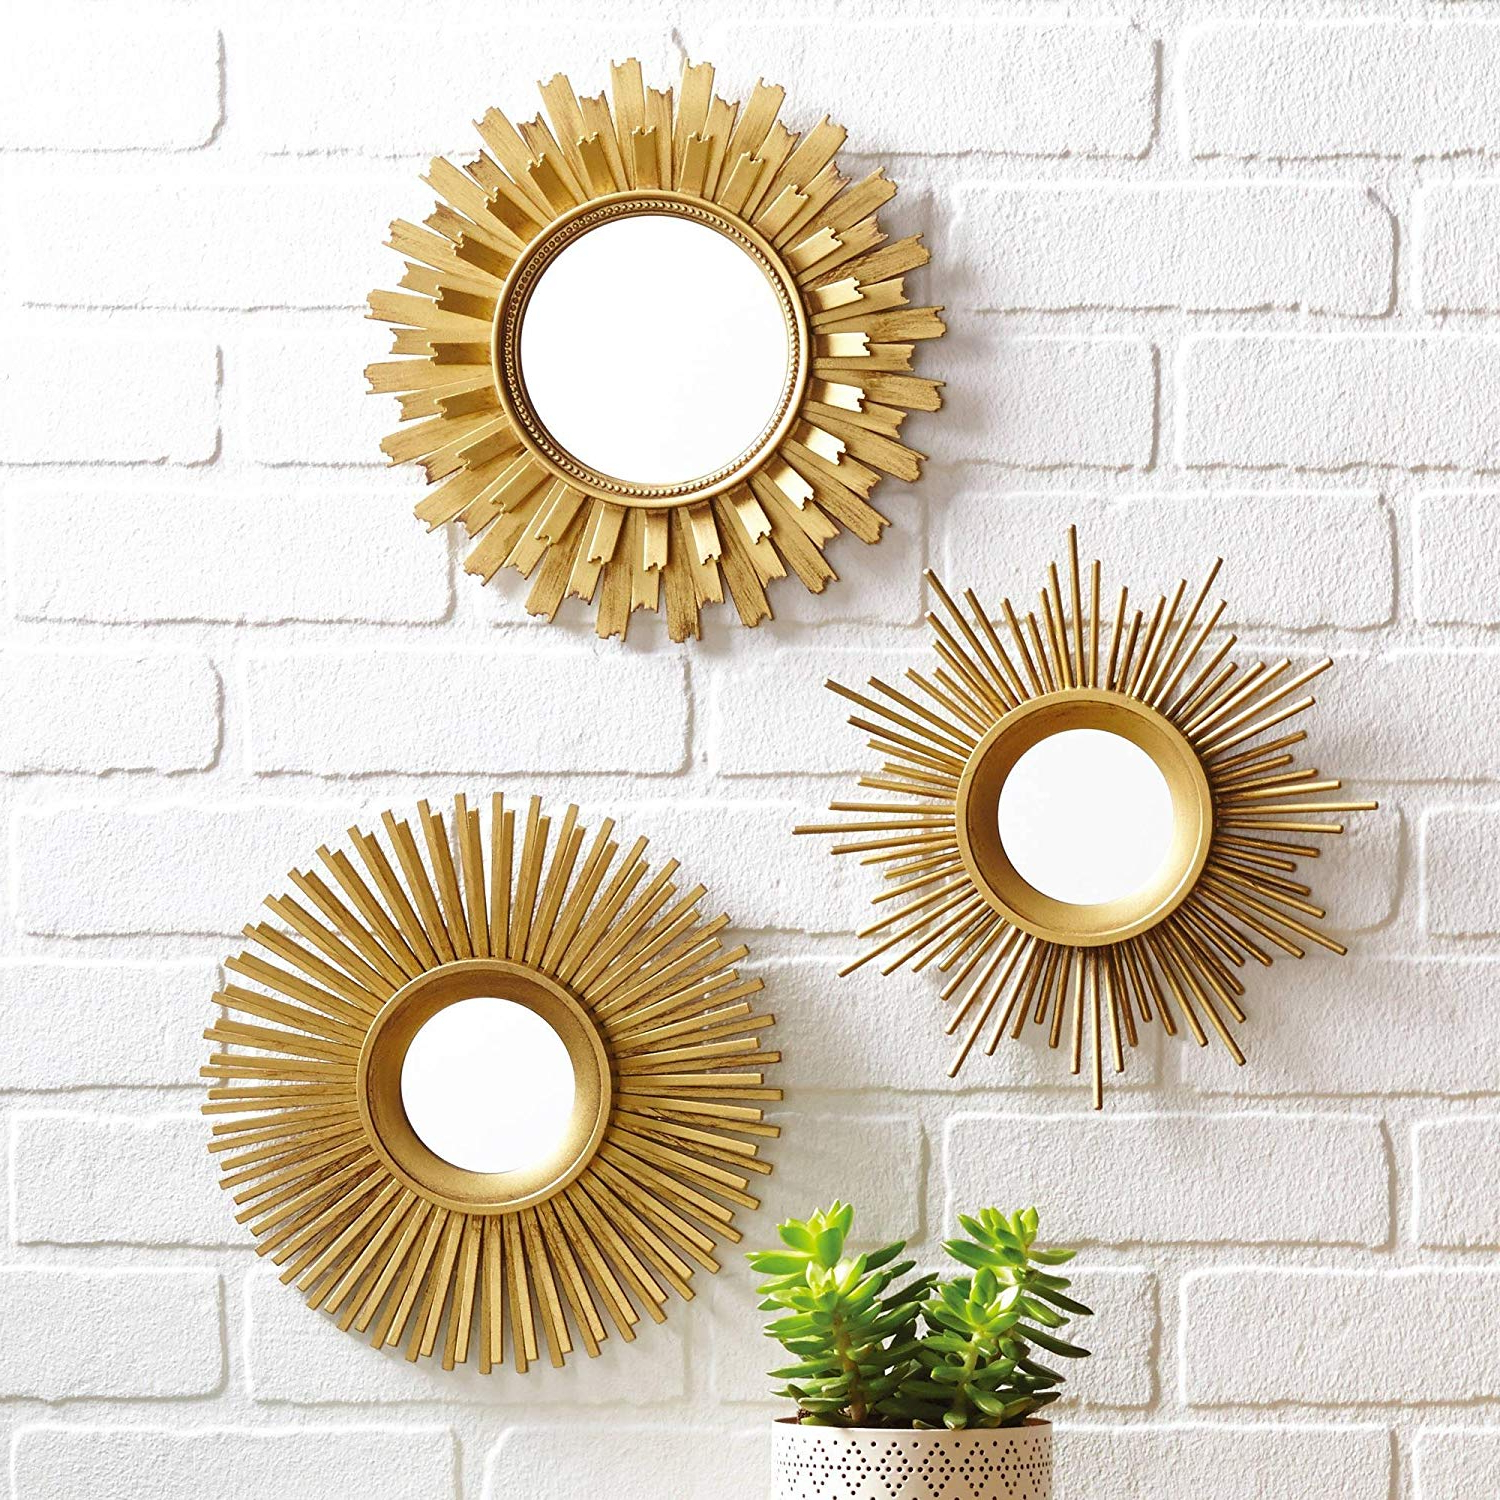 Round Wall Mirror Sets Pertaining To 2020 Details About Living Room Wall Mirror Set 3 Piece Round Sunburst Gold Finish Indoor Home Decor (View 5 of 20)